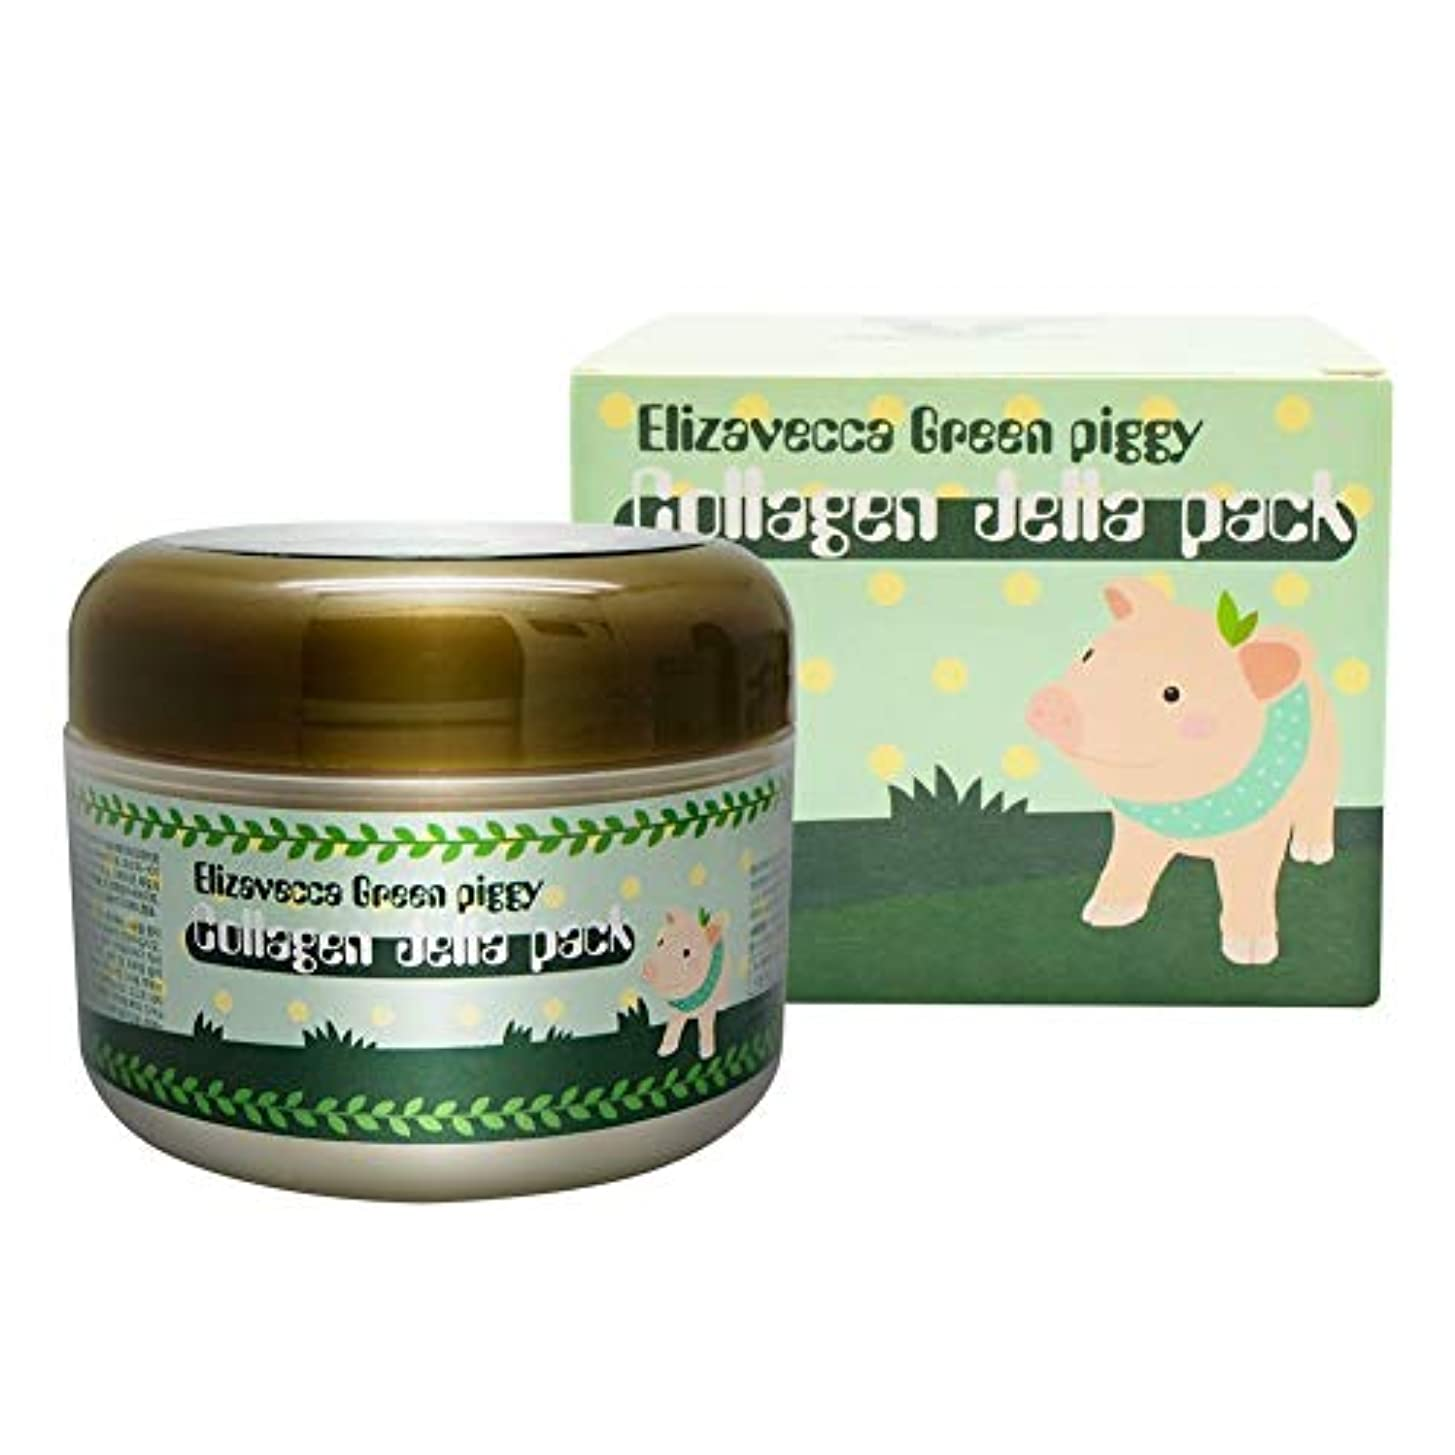 工業化する記憶に残るラウズElizavecca Green Piggy Collagen Jella Pack pig mask 100g